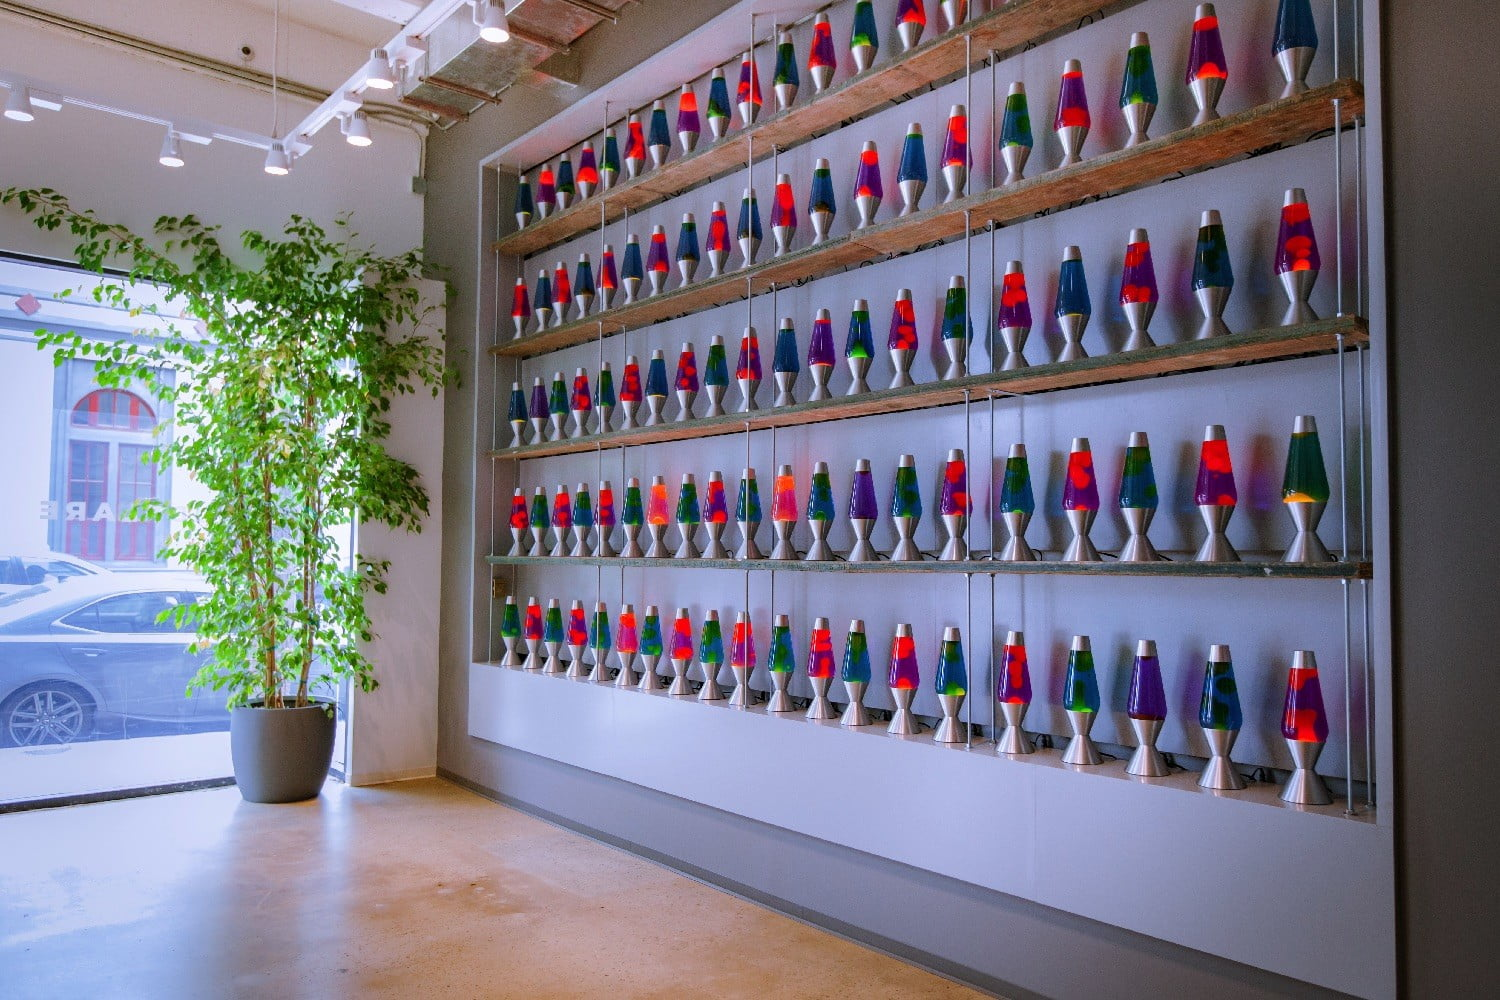 Sounds crazy, but this wall of lava lamps keeps you protected from hackers